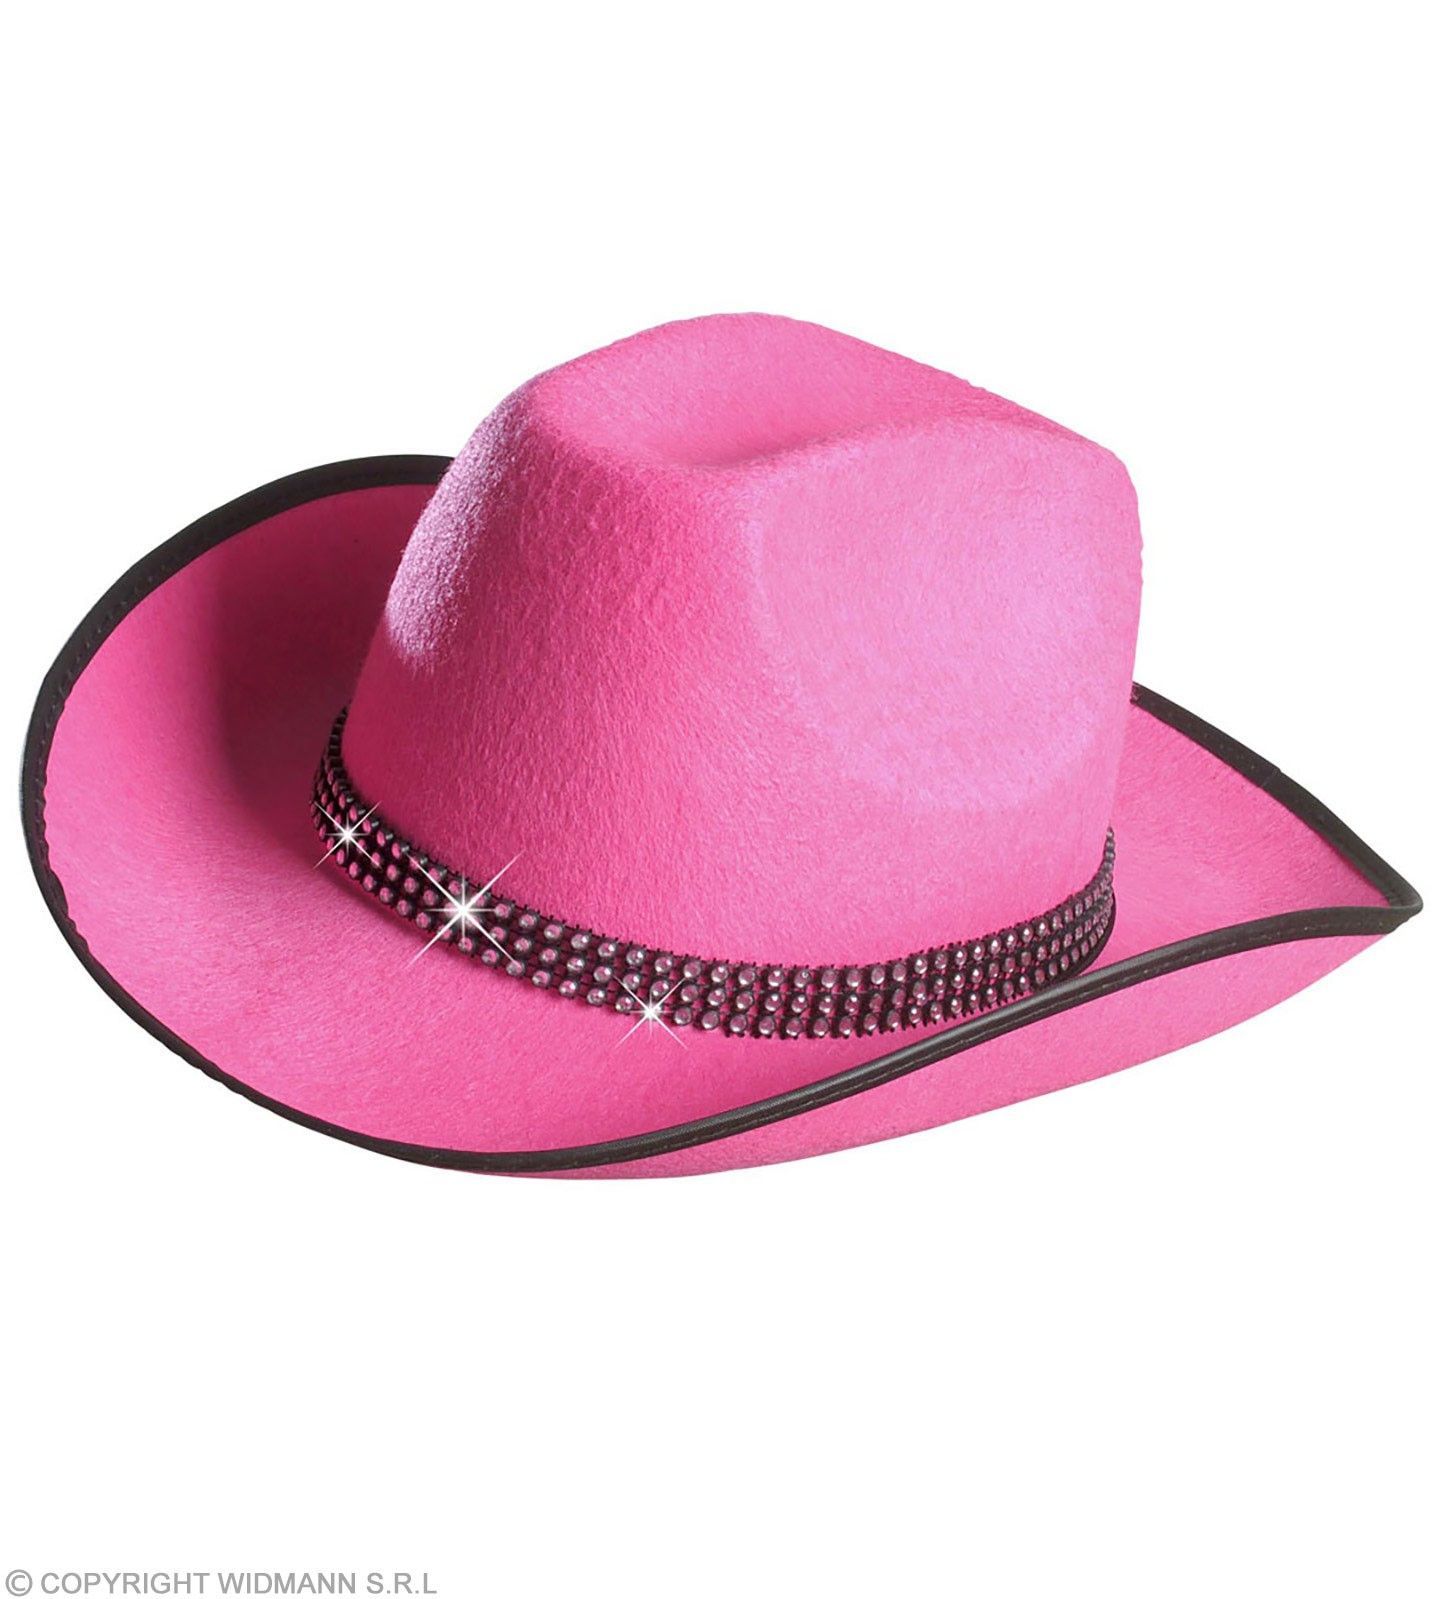 Cowboy Hat Felt W/Strass Band - Pink - Fancy Dress (Cowboys/Native Americans)